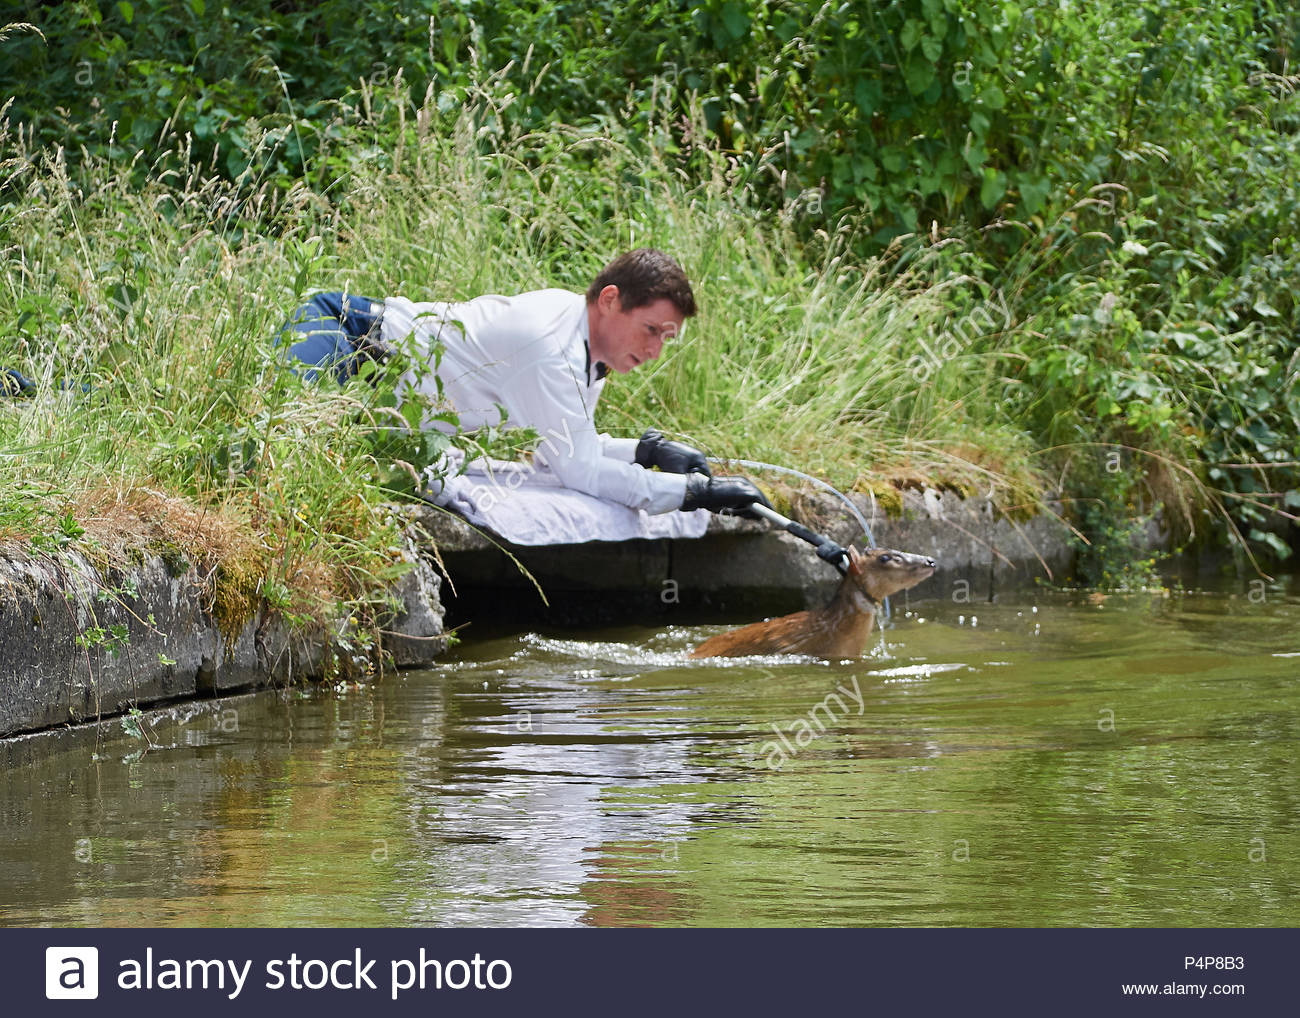 The RSPCA rescuing a Muntjac deer that fell into the canal near the Seabrook locks at Pitstone on the Grand Union Canal, UK - Stock Image